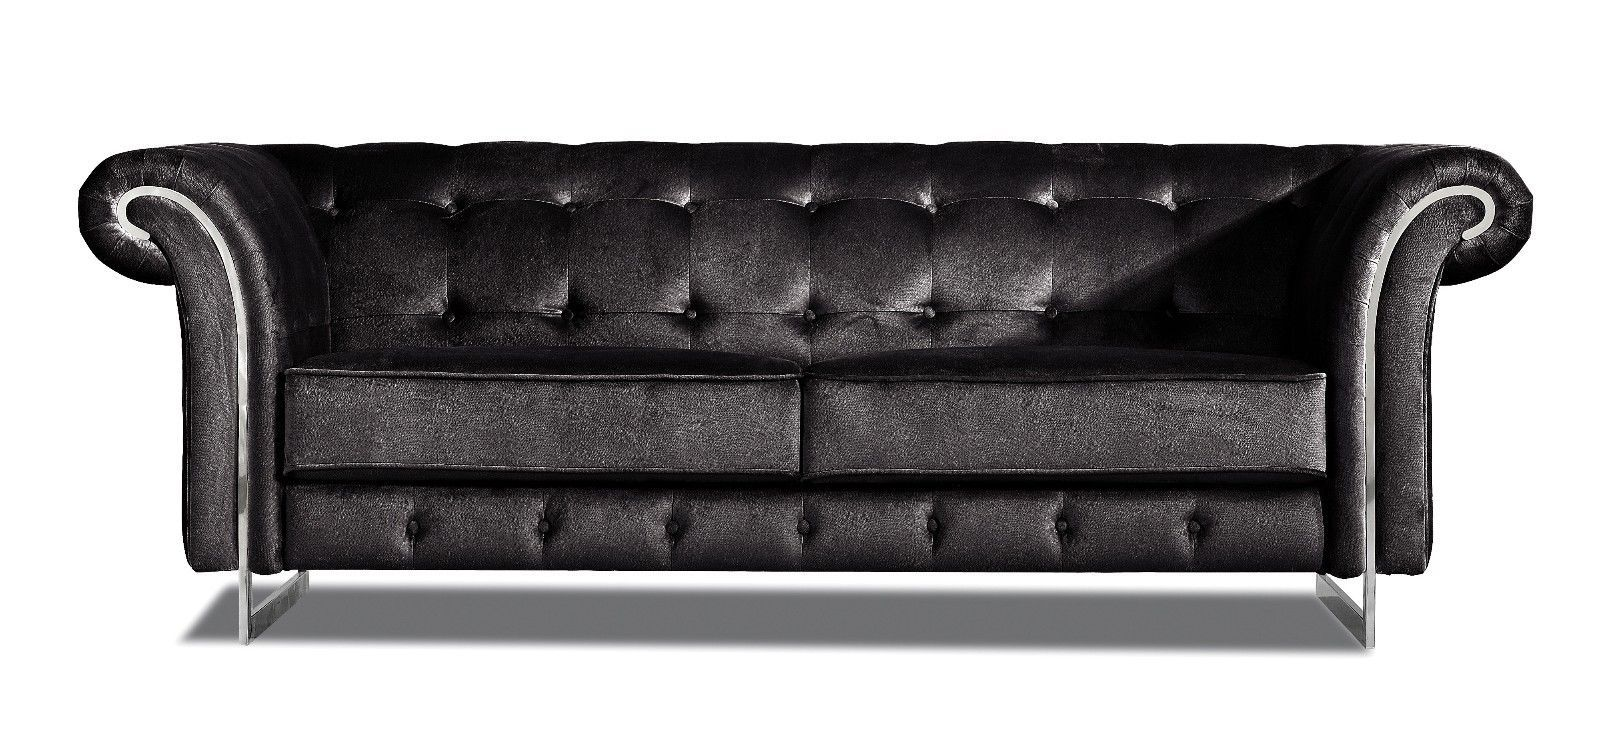 Meridian 626 Black Velvet Living Room Sofa Contemporary Style